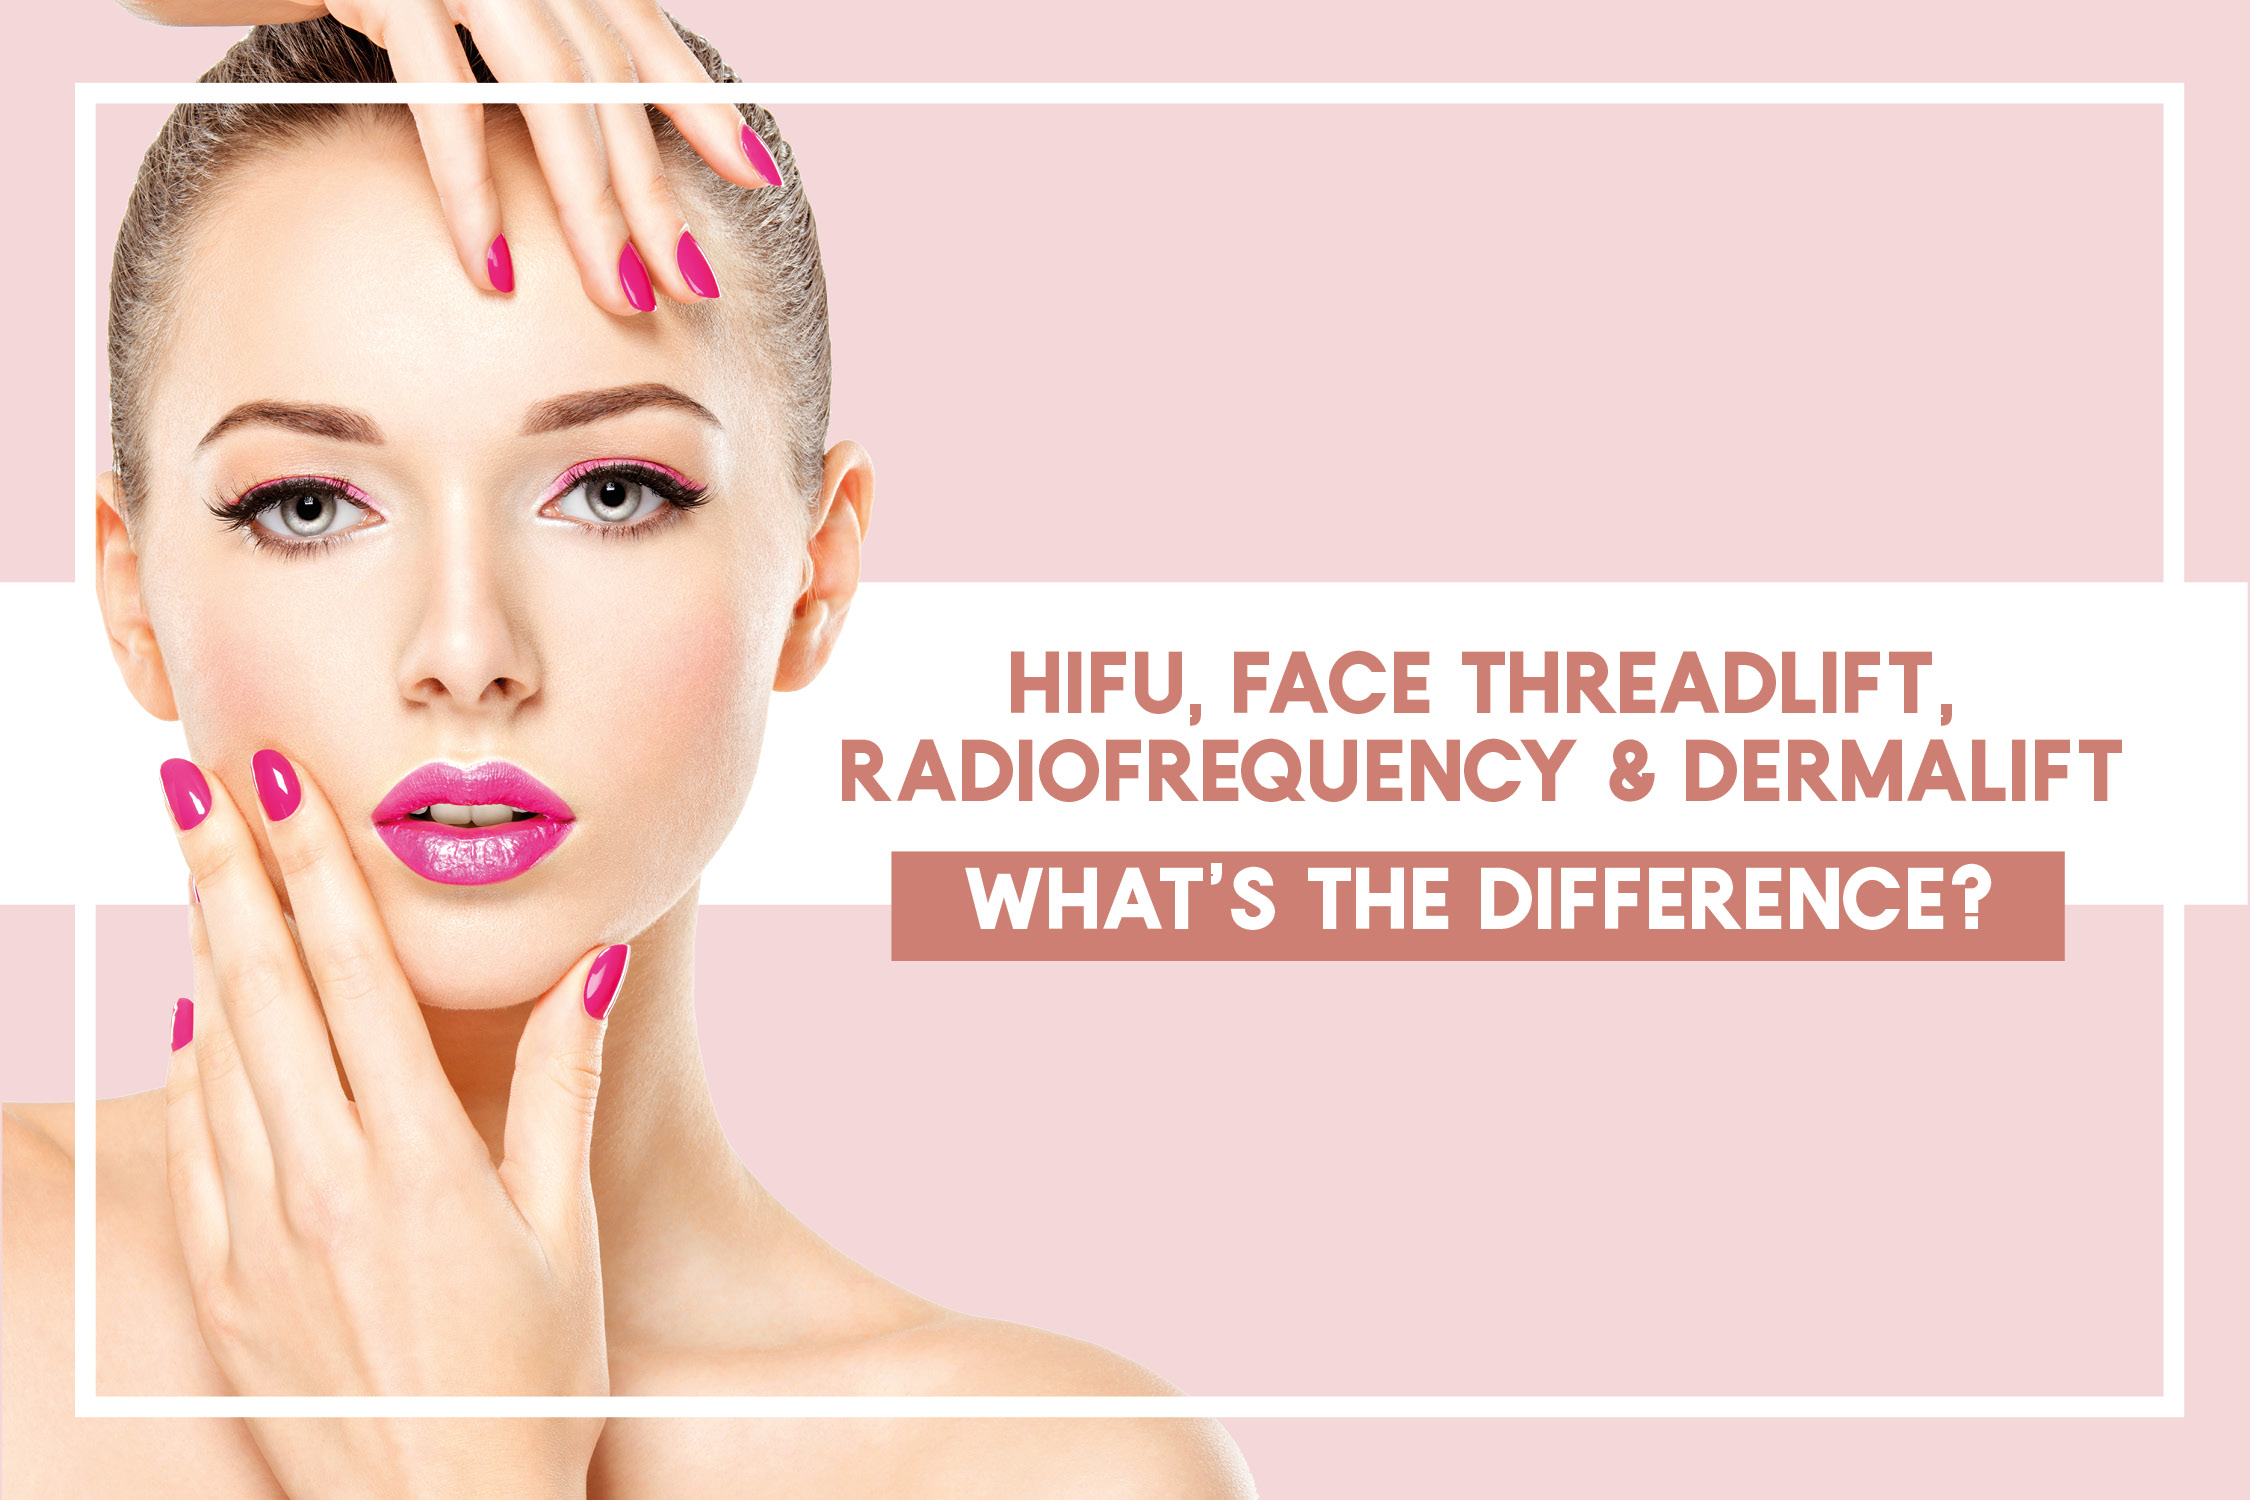 HIFU, Face Threadlift, Radiofrequency, Dermalift. A Comparison of Non-Invasive Face Lifts